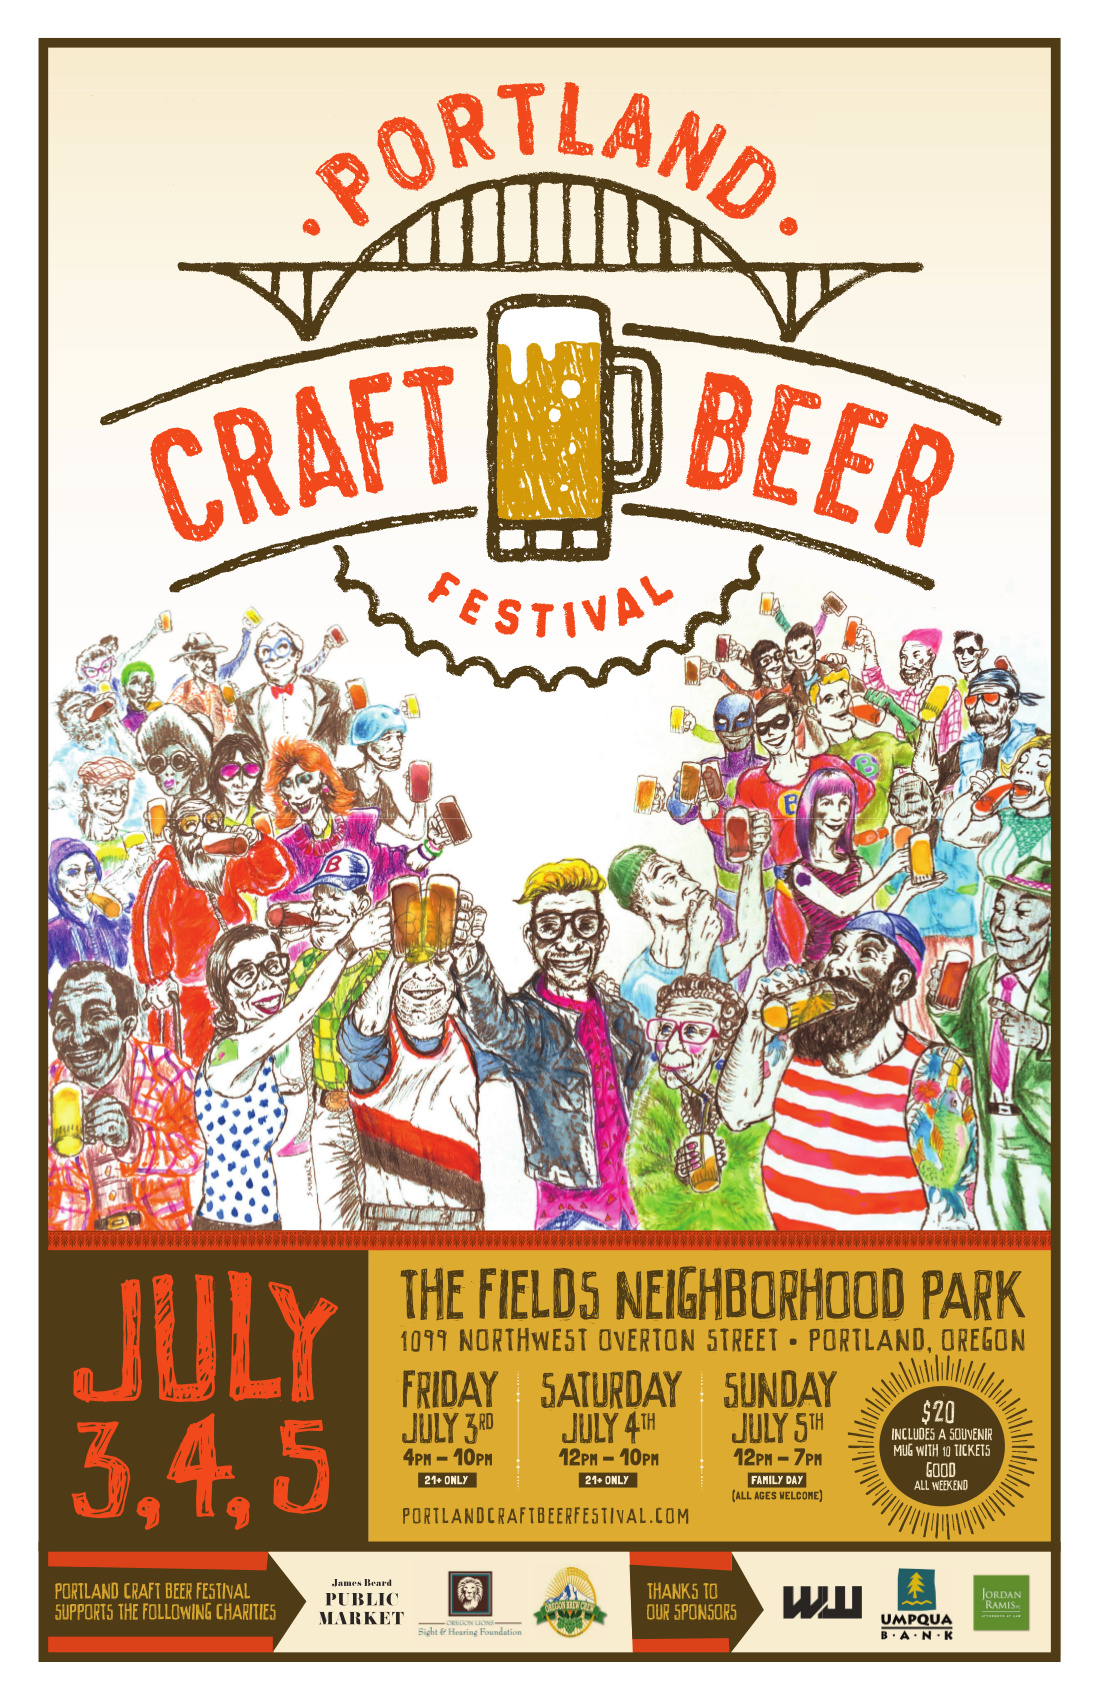 2015 Portland Craft Beer Festival Poster